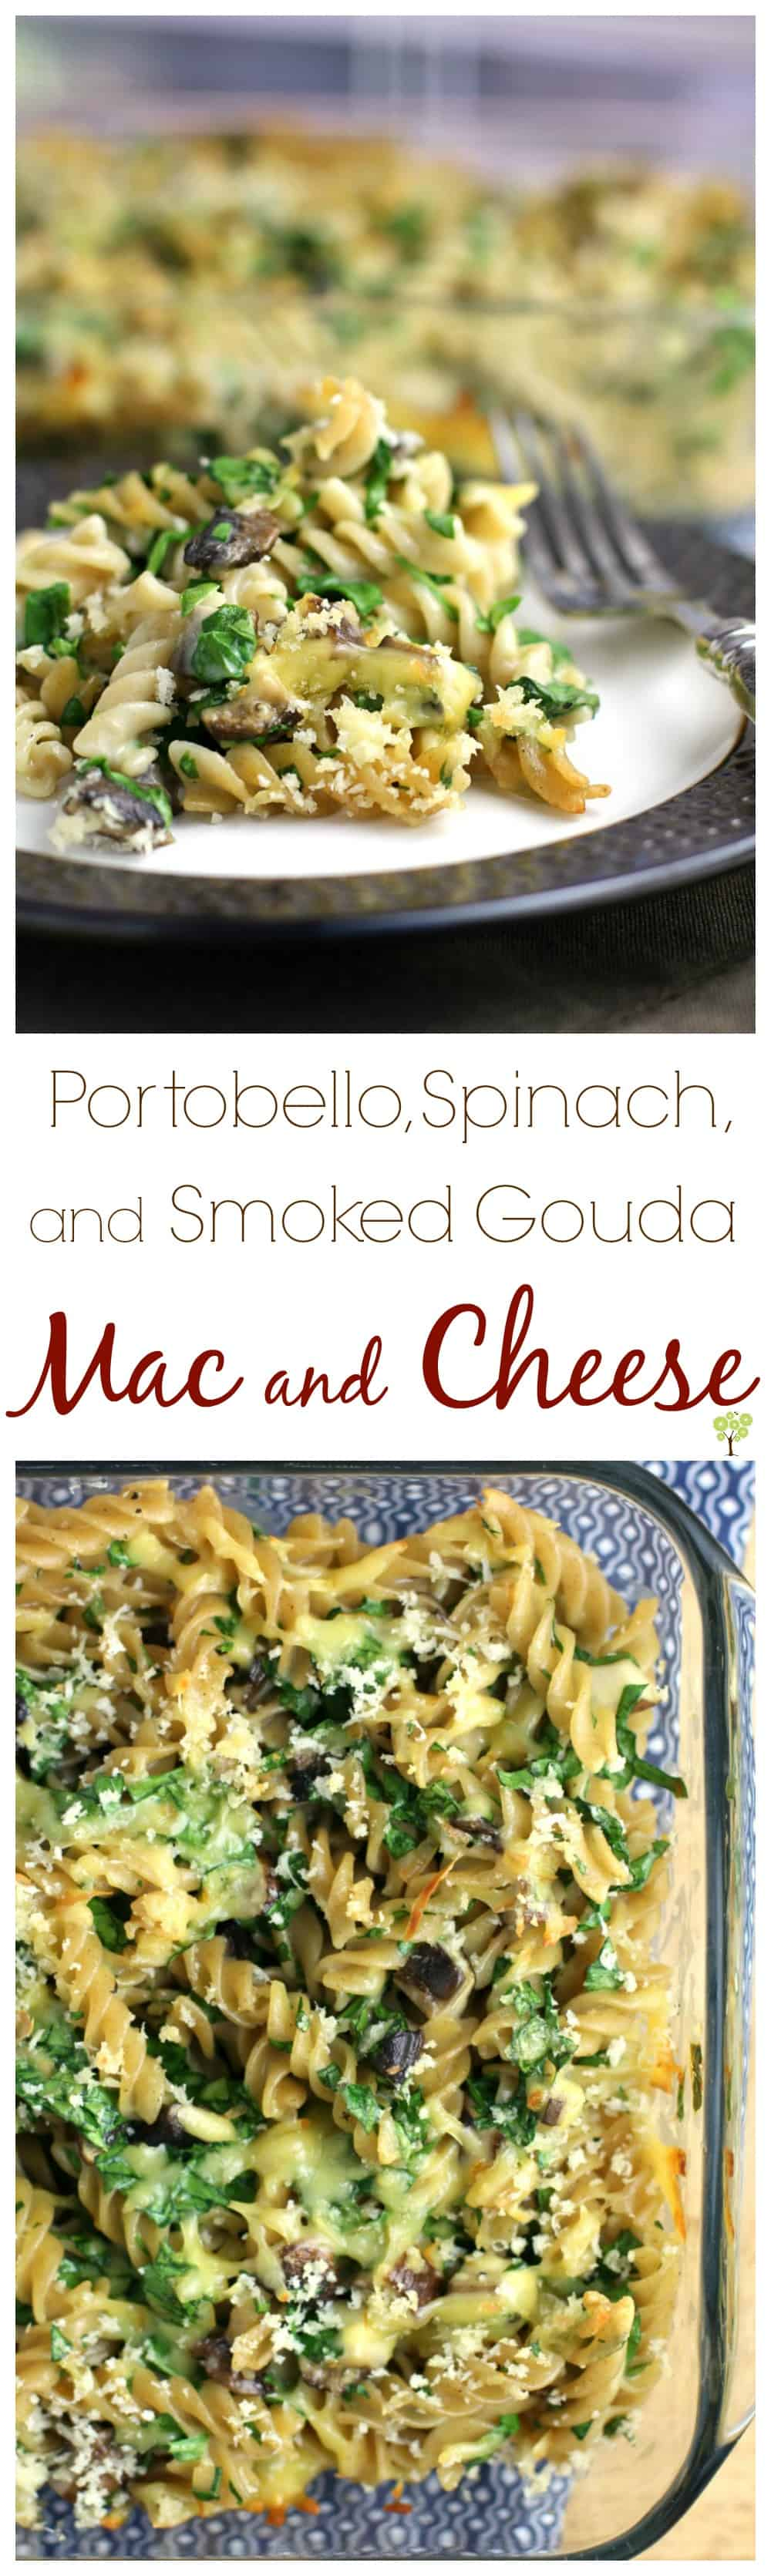 Portobello, Spinach, and Smoked Gouda Mac and Cheese from EricasRecipes.com